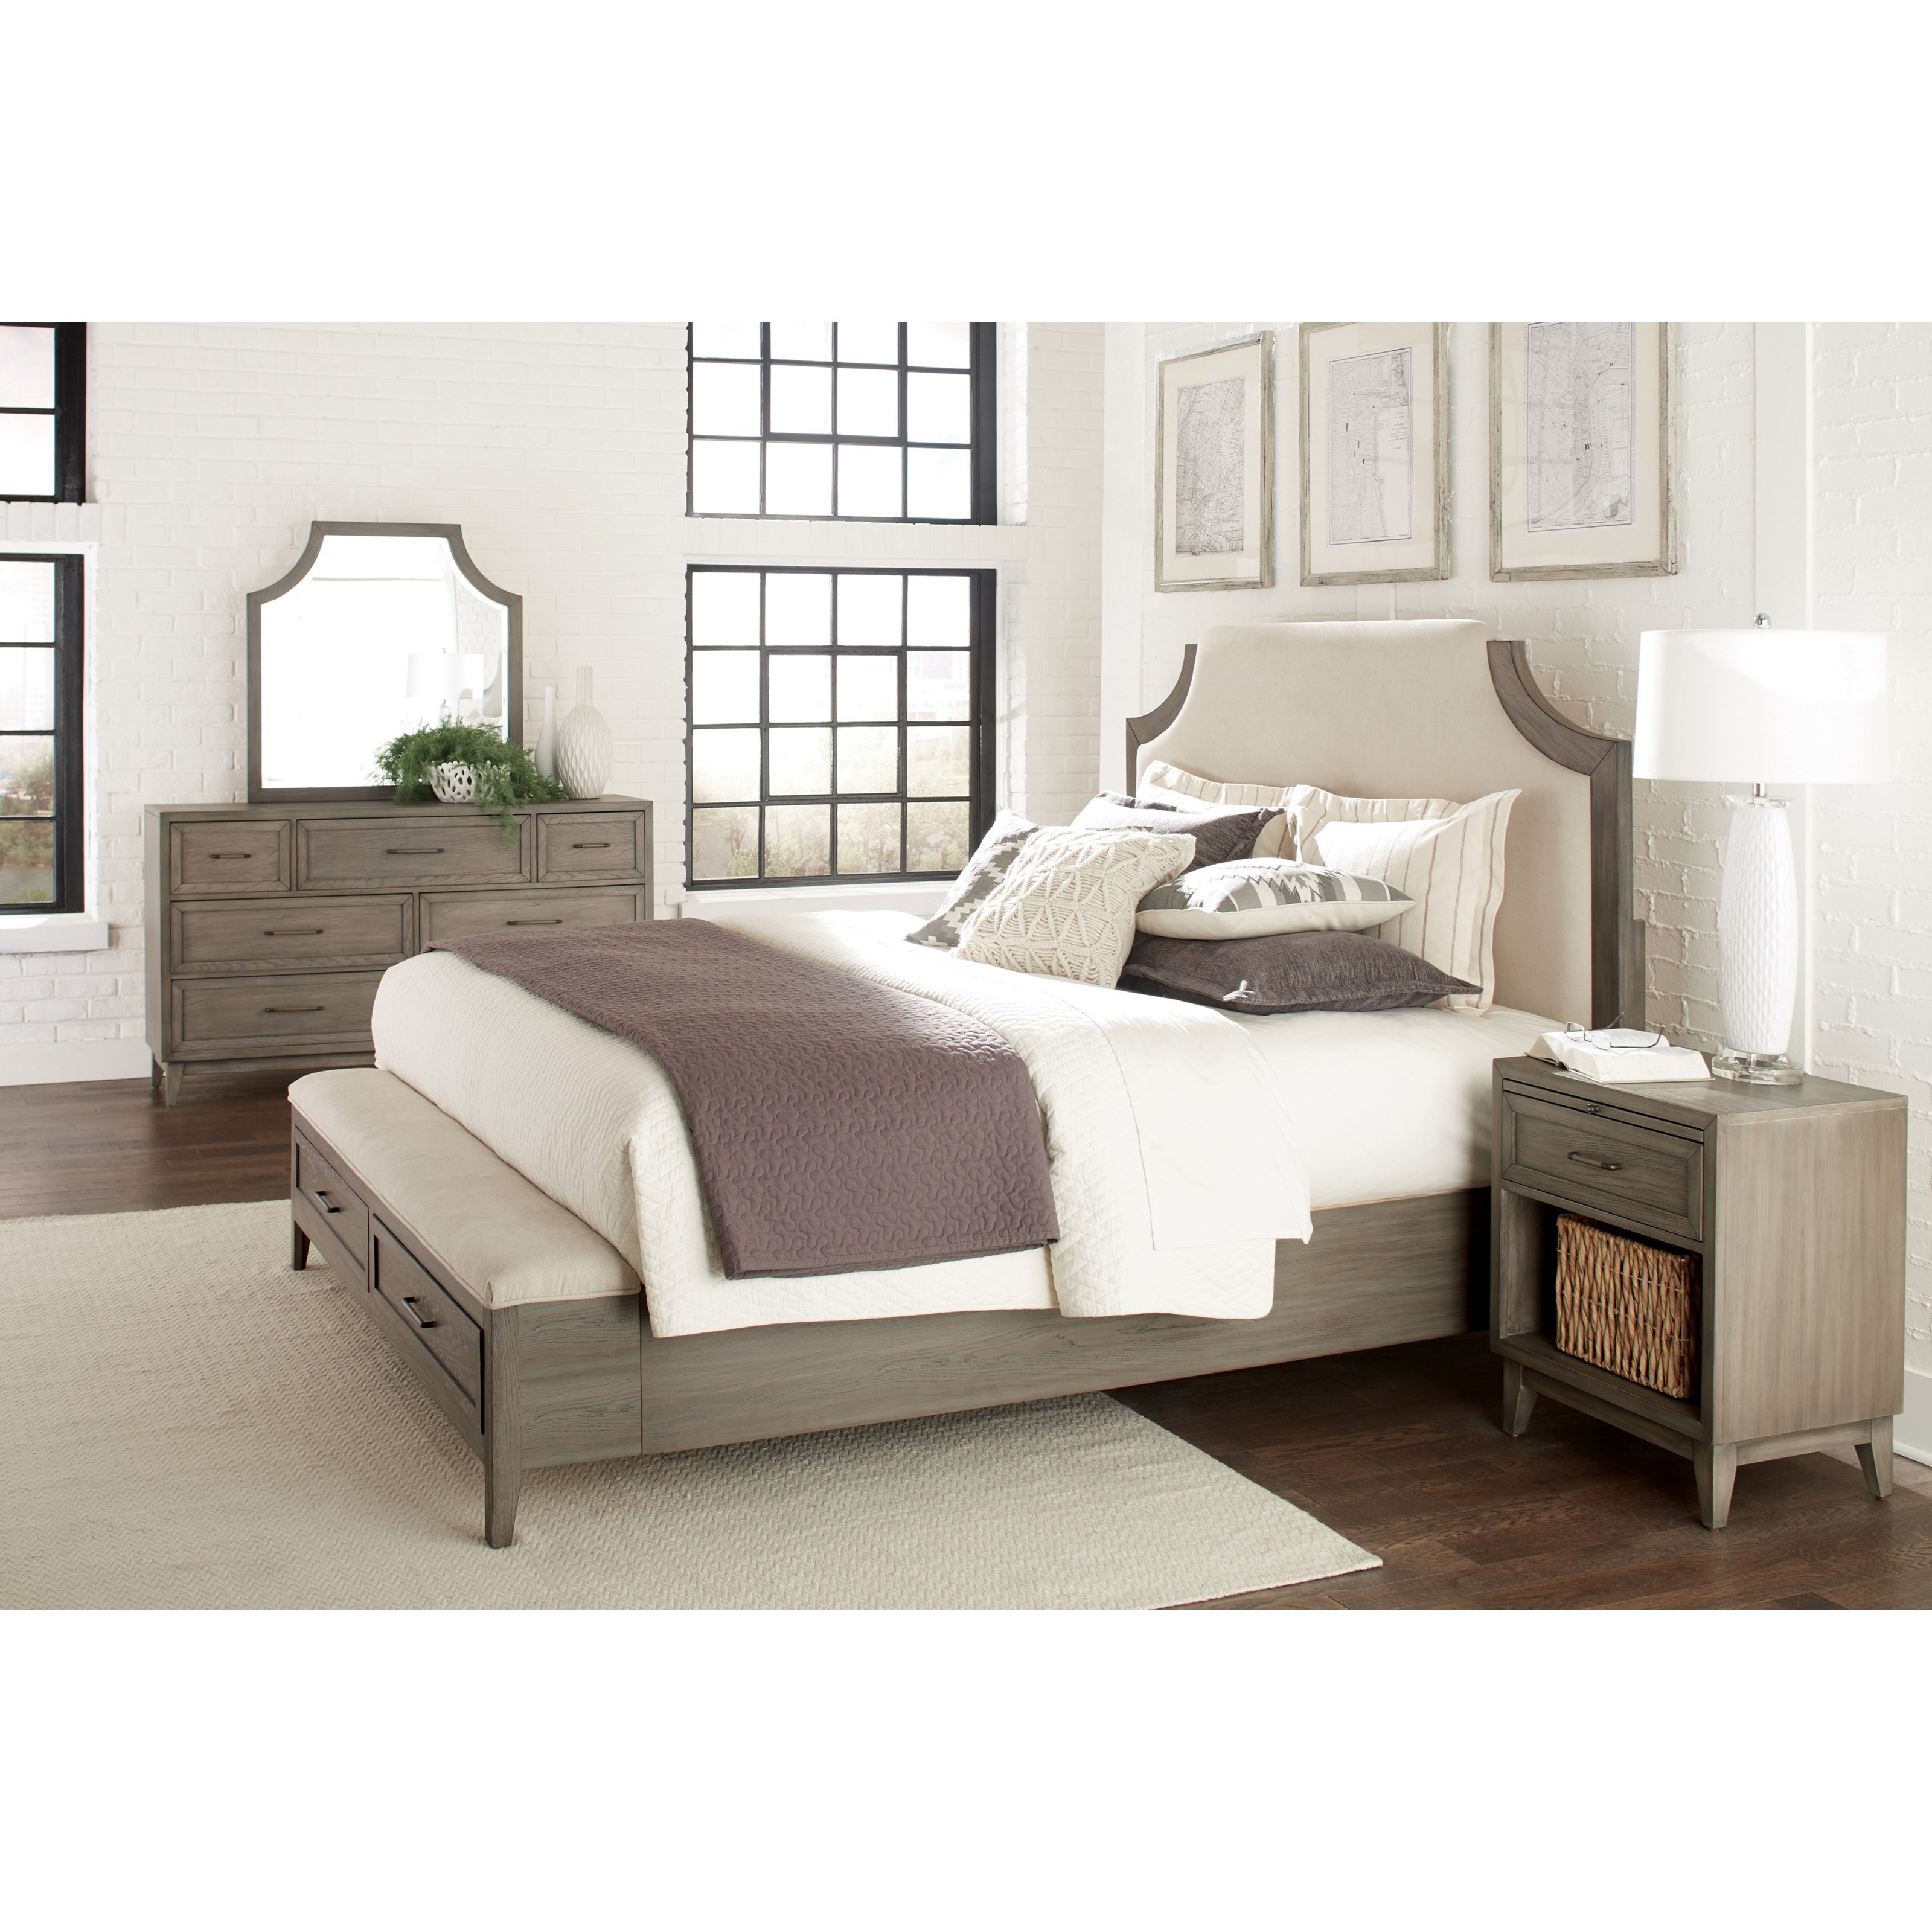 Vogue Queen Bedroom Group by Riverside Furniture at Zak's Home